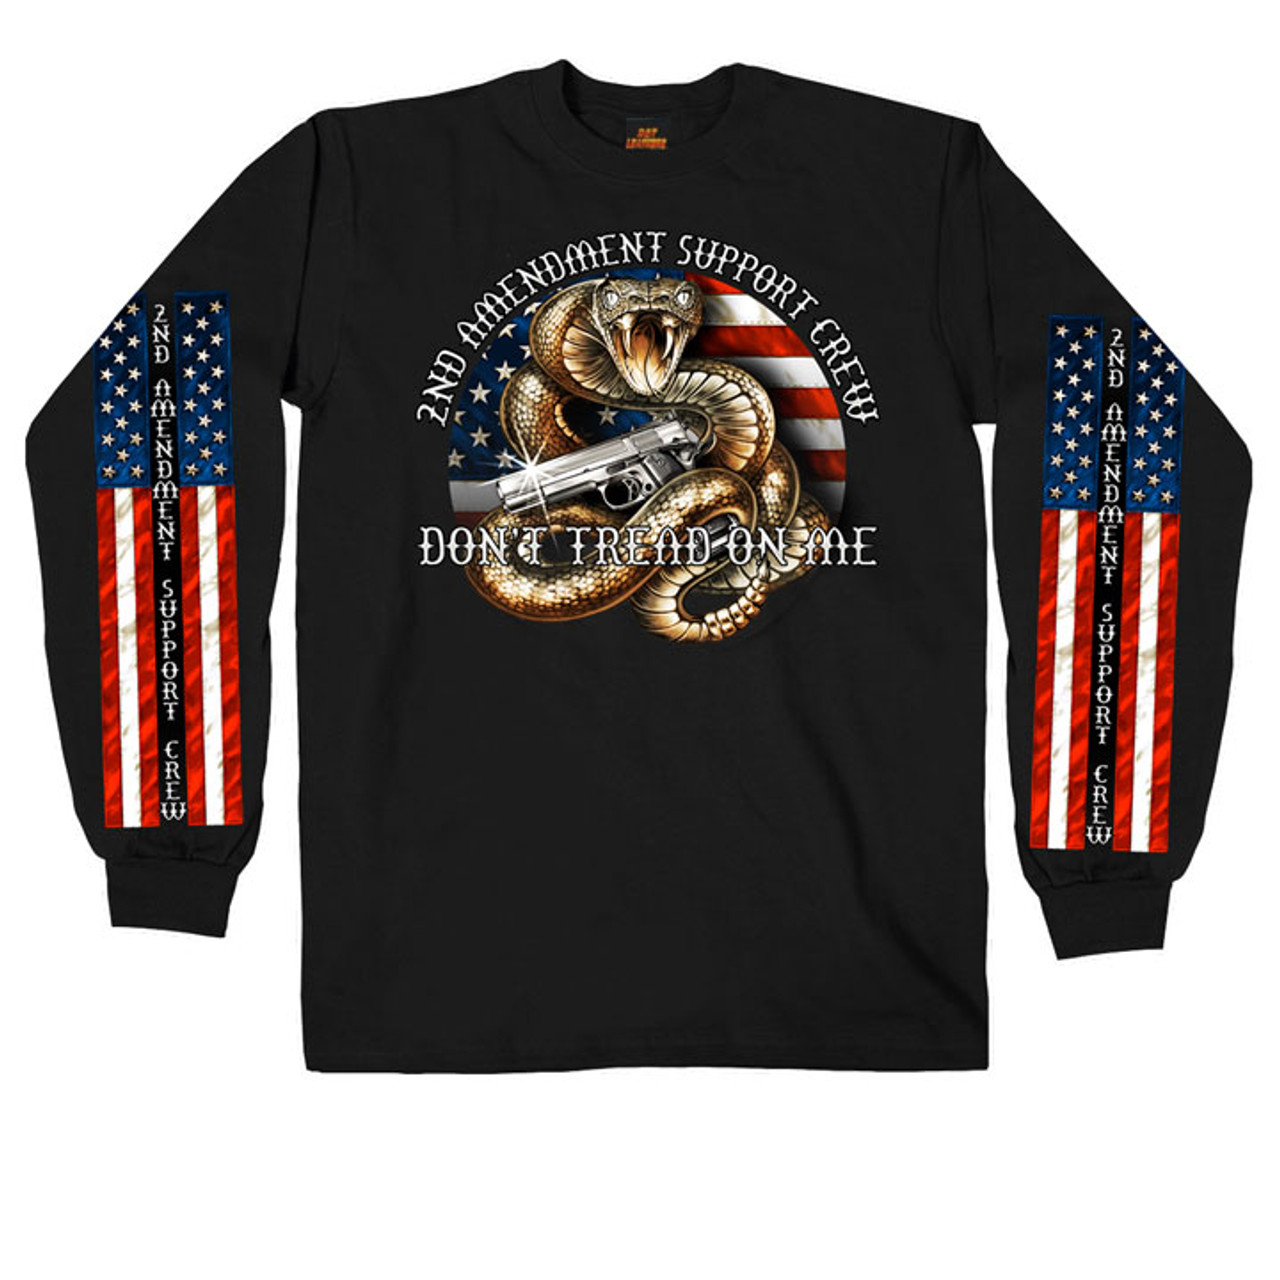 *(BACK-STREET-TEES & TRENDS)*  **(PROUDLY-VETERAN-OWNED,SELLING-HOT-GRAPHIC-LICENSED-PREMIUM-MILITARY-TEES,HATS,HOODIES & LICENSED-MILITARY-TACTICAL & HUNTING-KNIVES & HUNTING-TEES,HOT & TRENDY-CAMO-COMFORTER-BEDDING-SETS/FAUX-SHERPA-CAMO-BLANKETS;NEW-LICENSED-N.R.A. & HUNTING-TEES & HOODIES,OFFICIAL-NFL & MLB-TEES & HOODIES,NOW-OFFERING-OVER>1000+PREMIUM-GRAPHIC-PRINTED-TEES,HATS & HOODIE-DESIGNS;SO-NOW-VIEW,SHOP & ORDER-ALL-ONLINE-AT)**(www.back-street-tees.com) & (www.storenvy.com/stores/293779-tee-shirt-shack-trends)